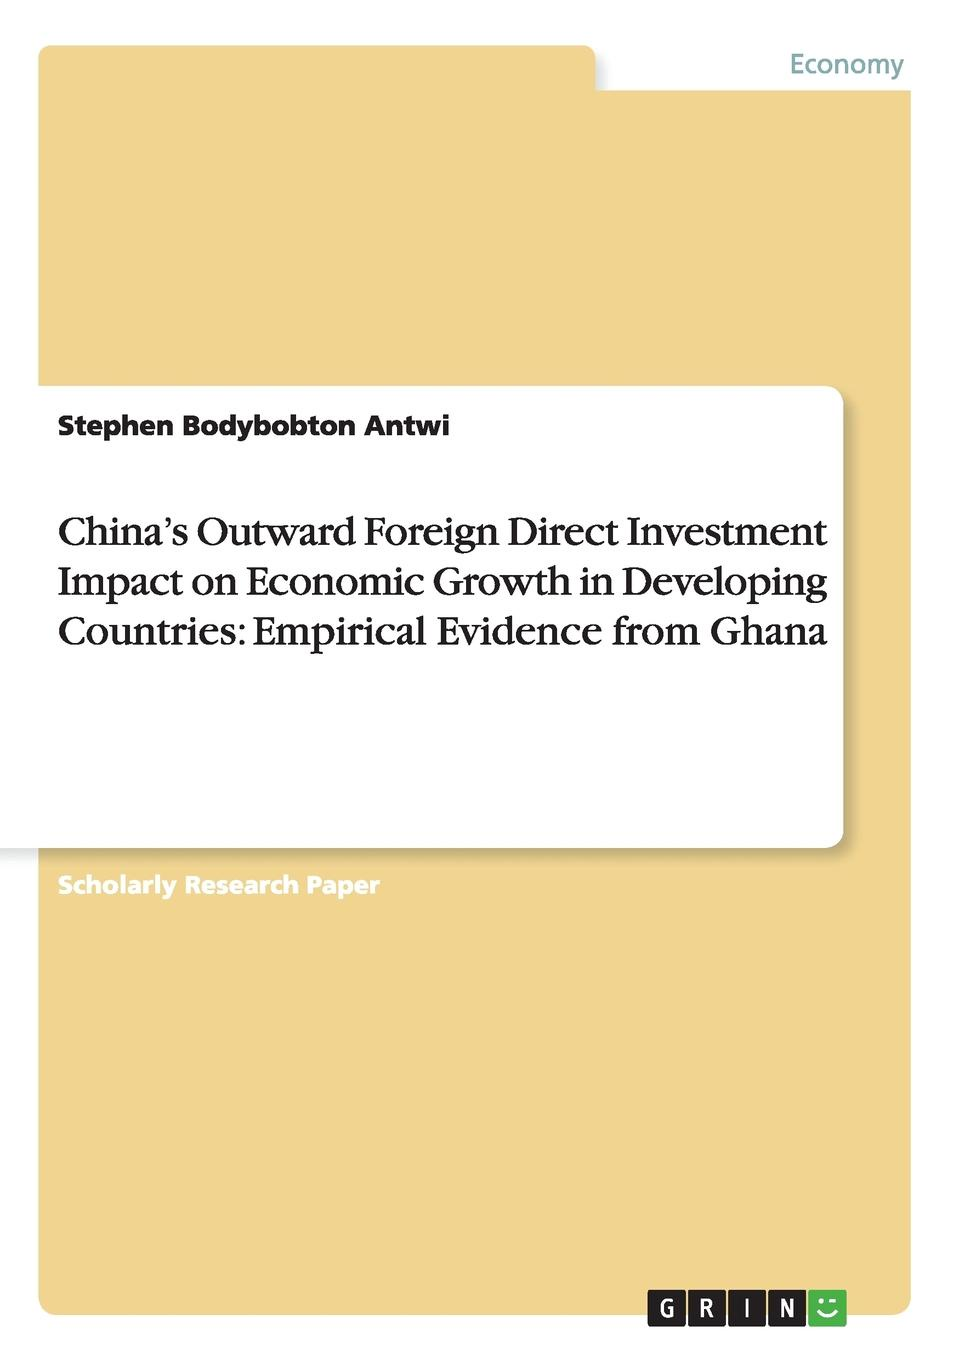 Stephen Bodybobton Antwi China.s Outward Foreign Direct Investment Impact on Economic Growth in Developing Countries. Empirical Evidence from Ghana tibebu aragie impact foreign direct investment on domestic private investment in ethiopia